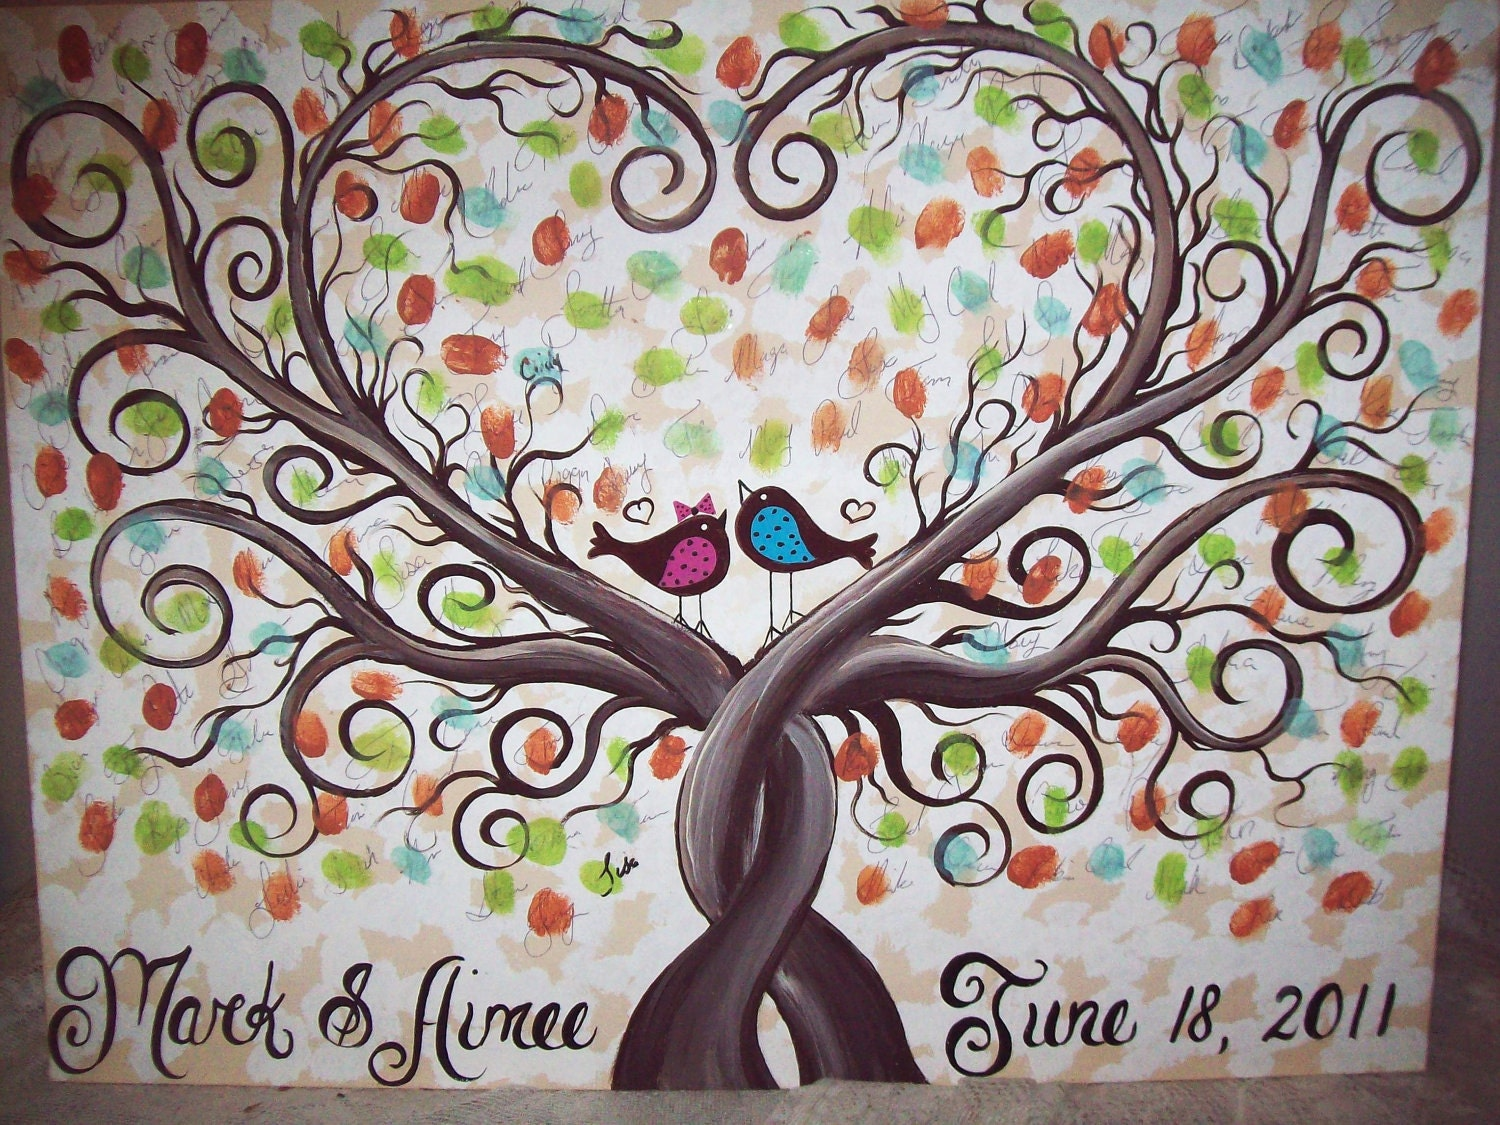 Wedding Gift Paintings: Wedding Thumbprint Guest Book Canvas....150-175 Guests......18